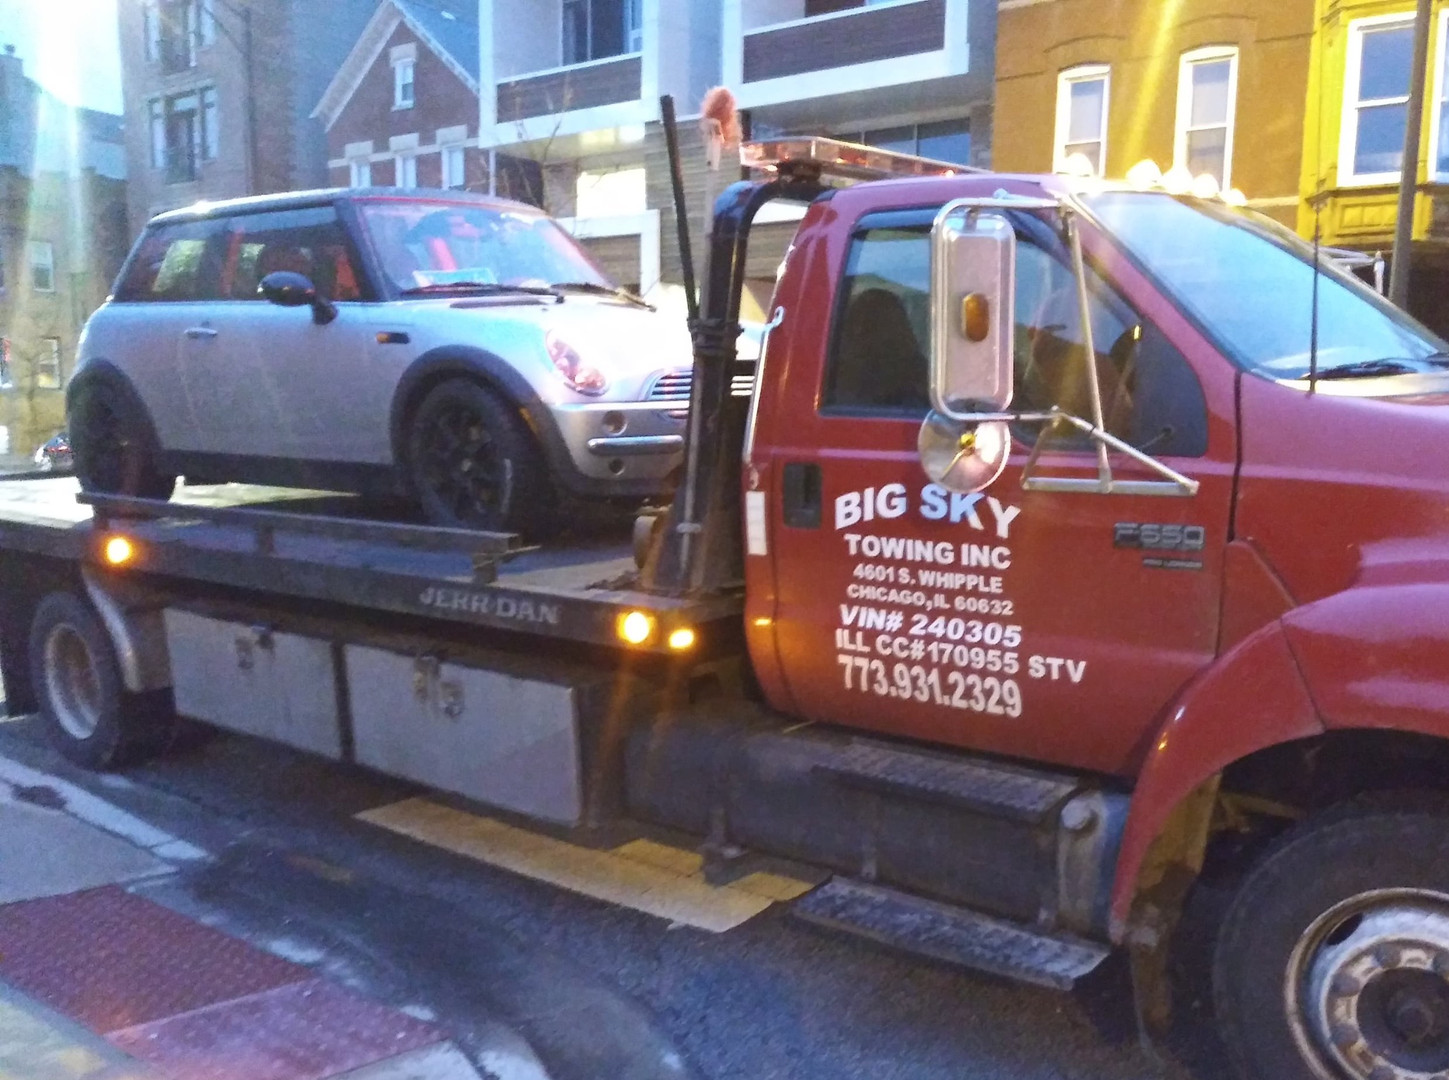 Big Sky Towing Inc   Towing Company   Chicago